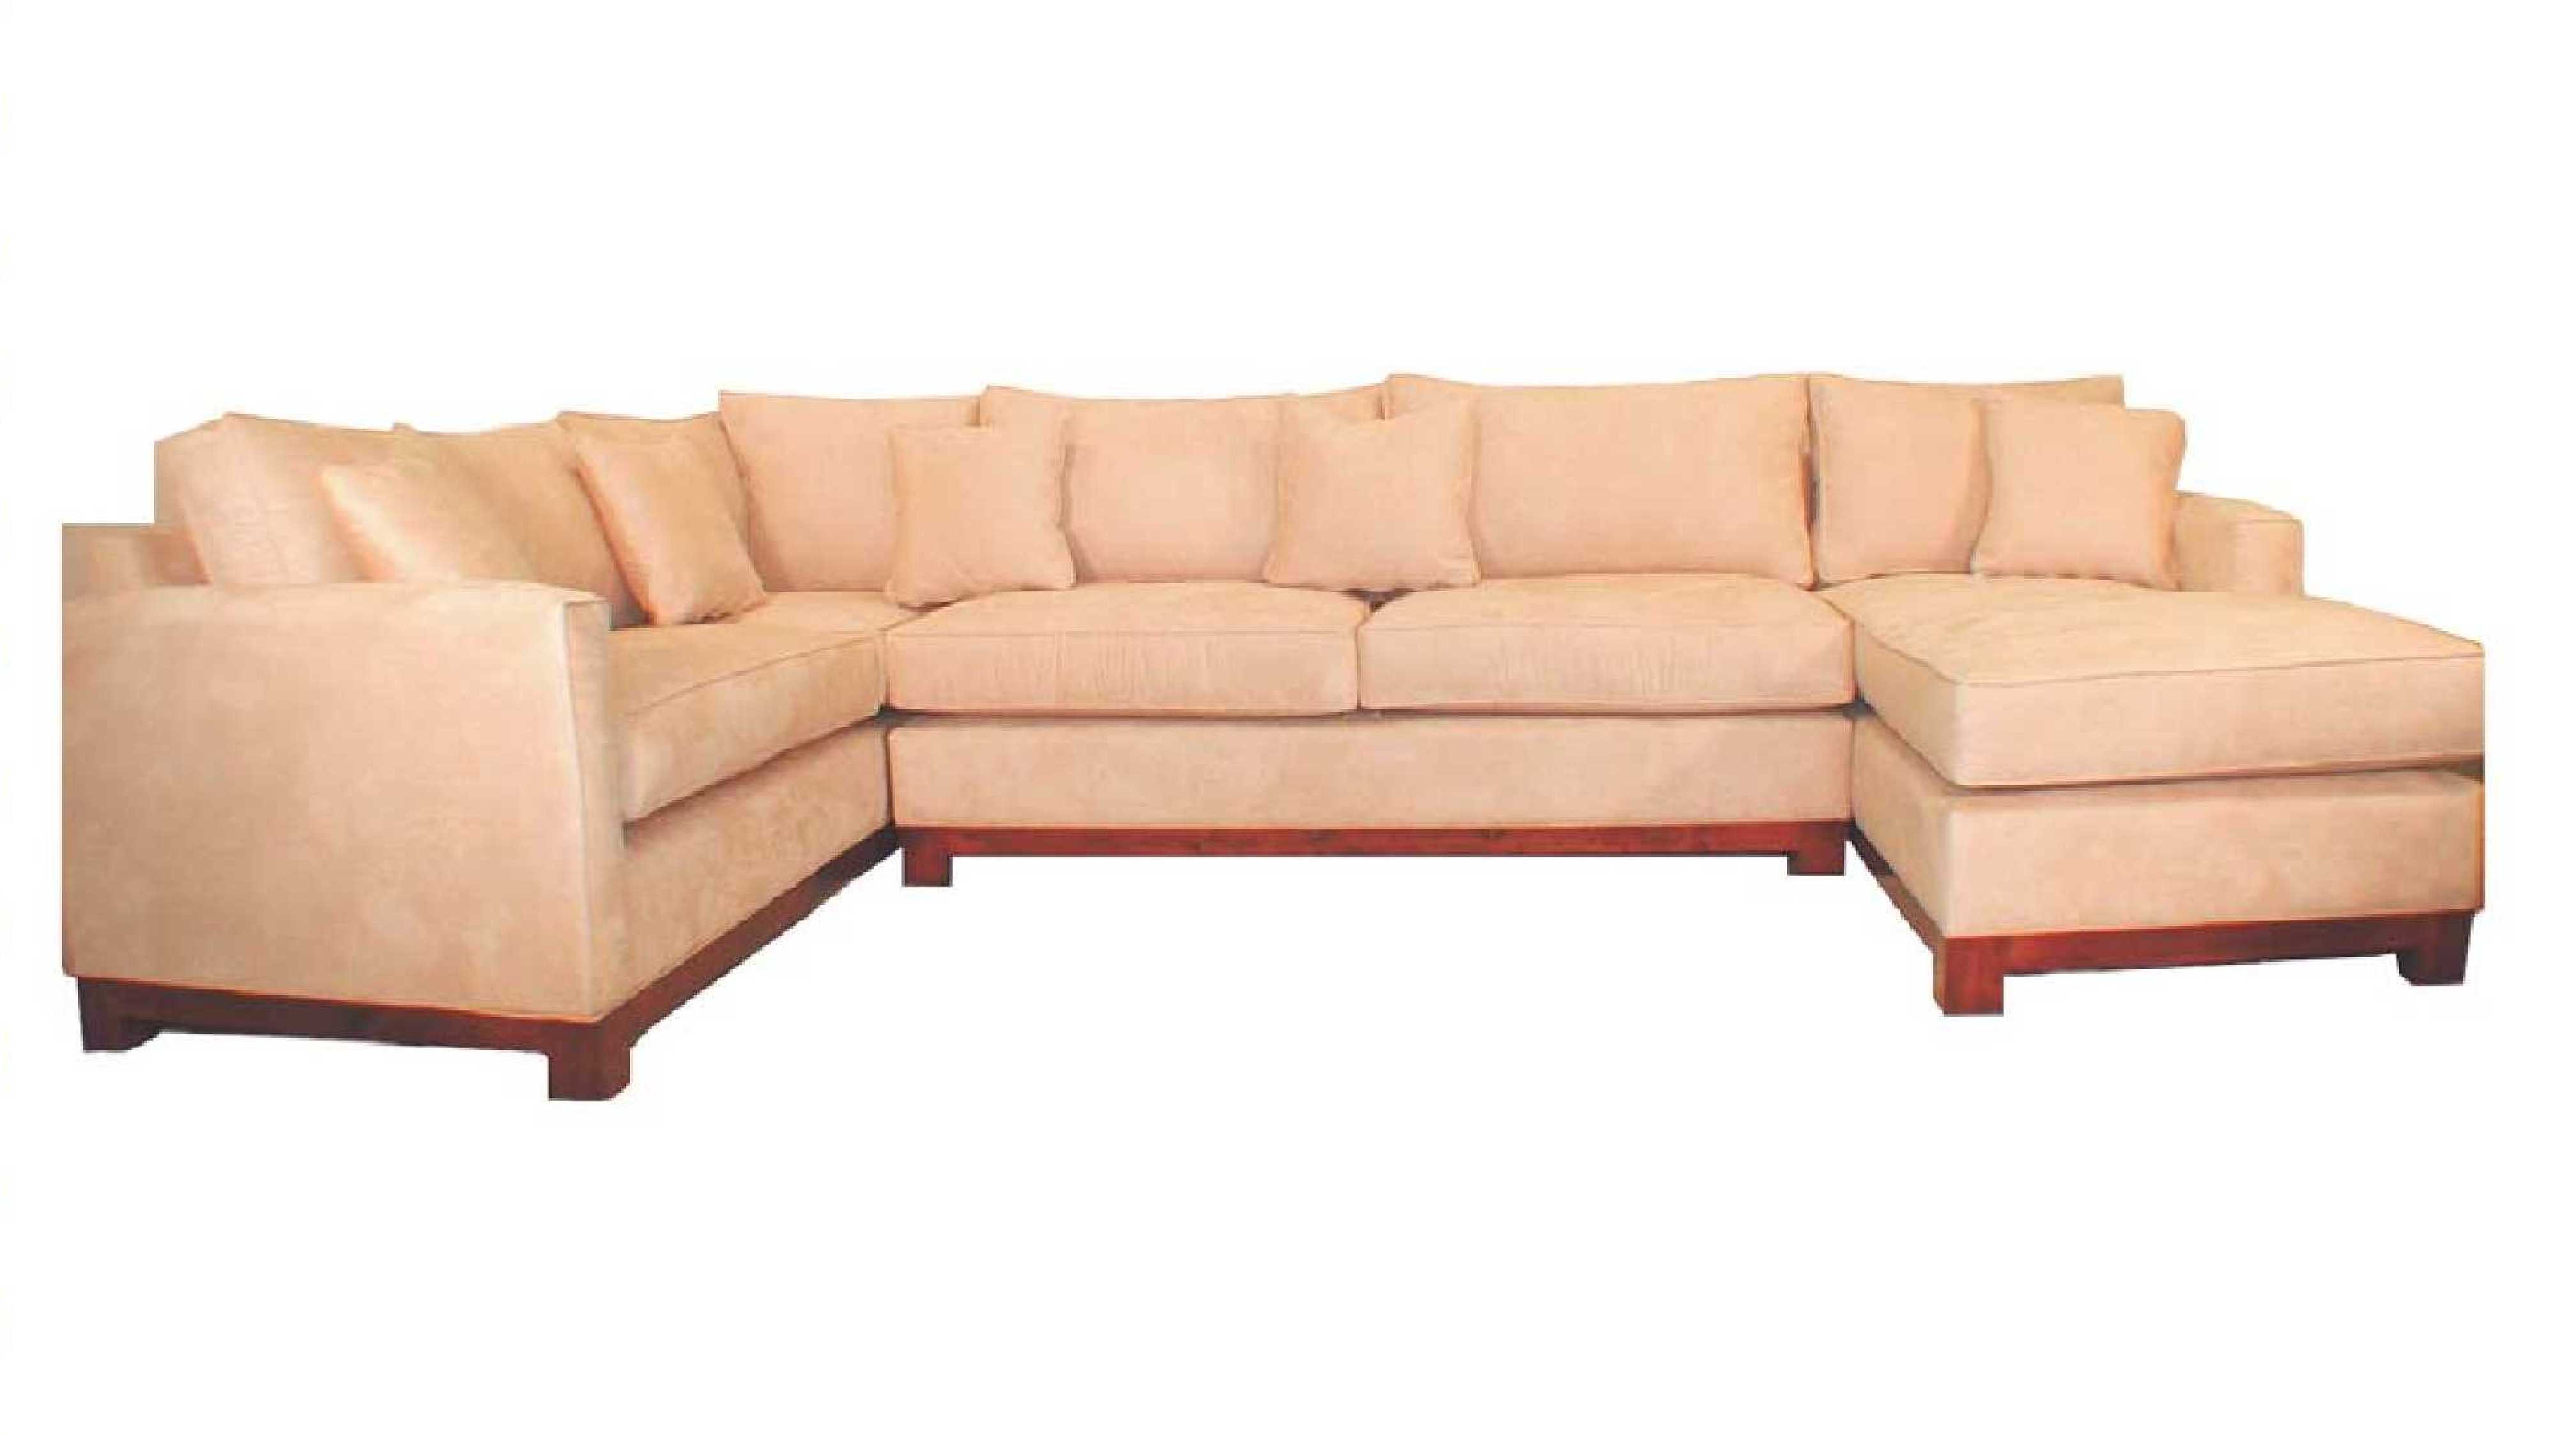 La cienega sofa factory for Sofa sofa company